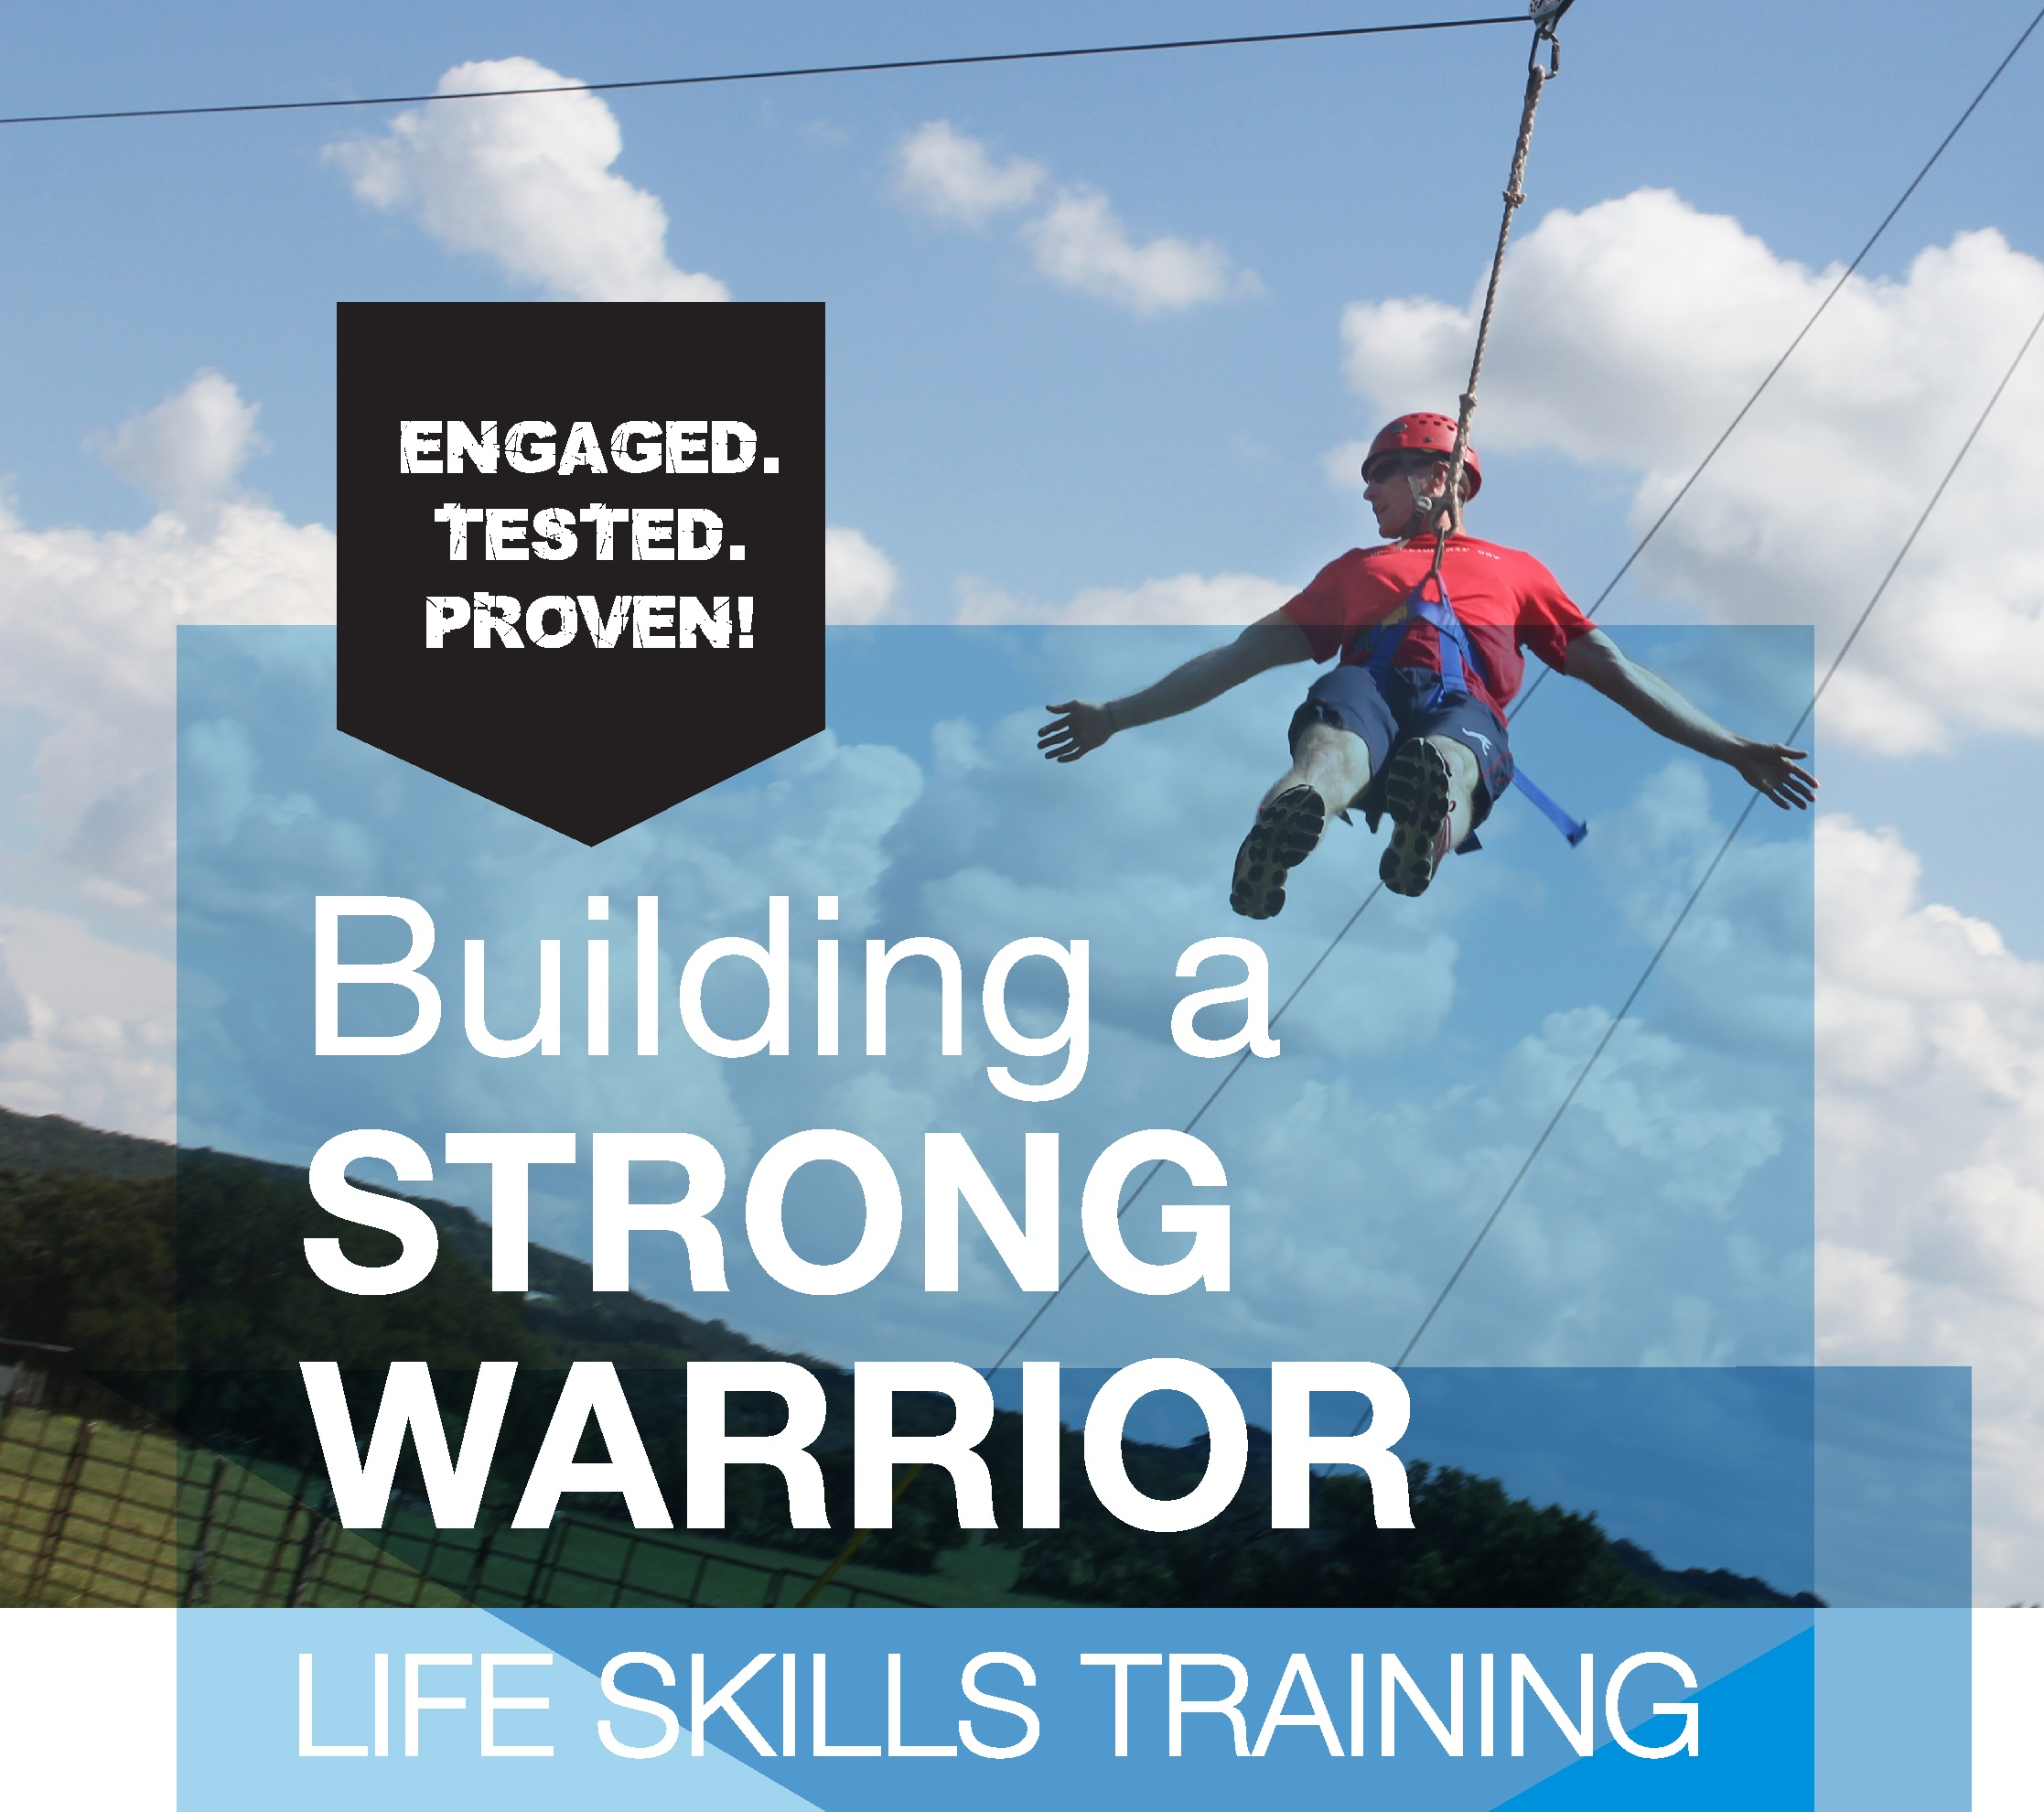 Building a Strong Warrior Life Skills Training